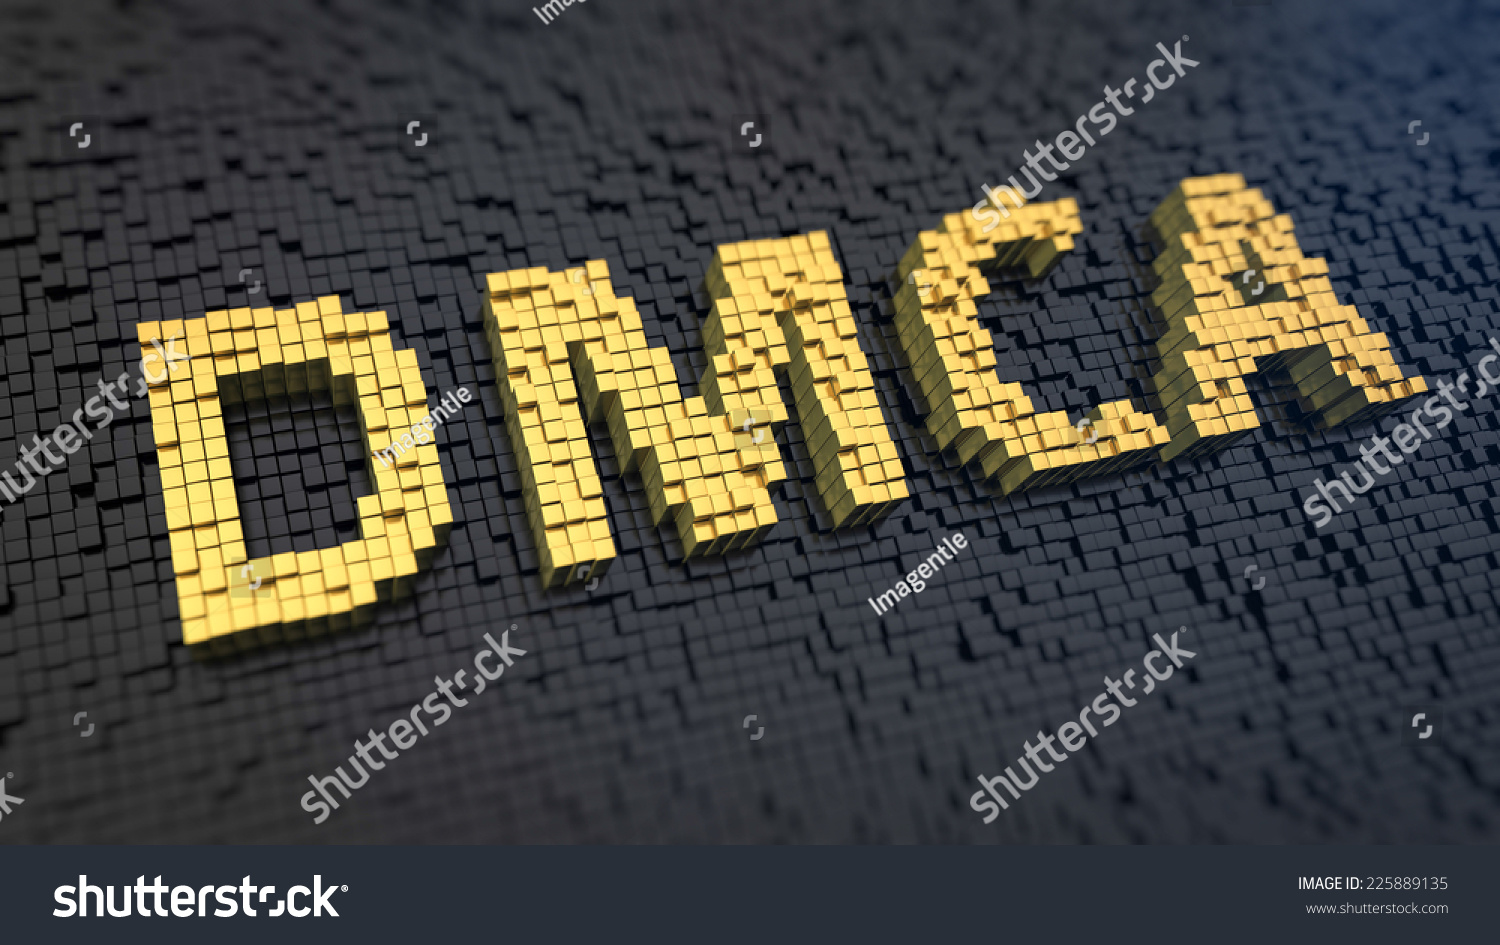 Acronym DMCA of the yellow square pixels on a black matrix background Internet copyright issue